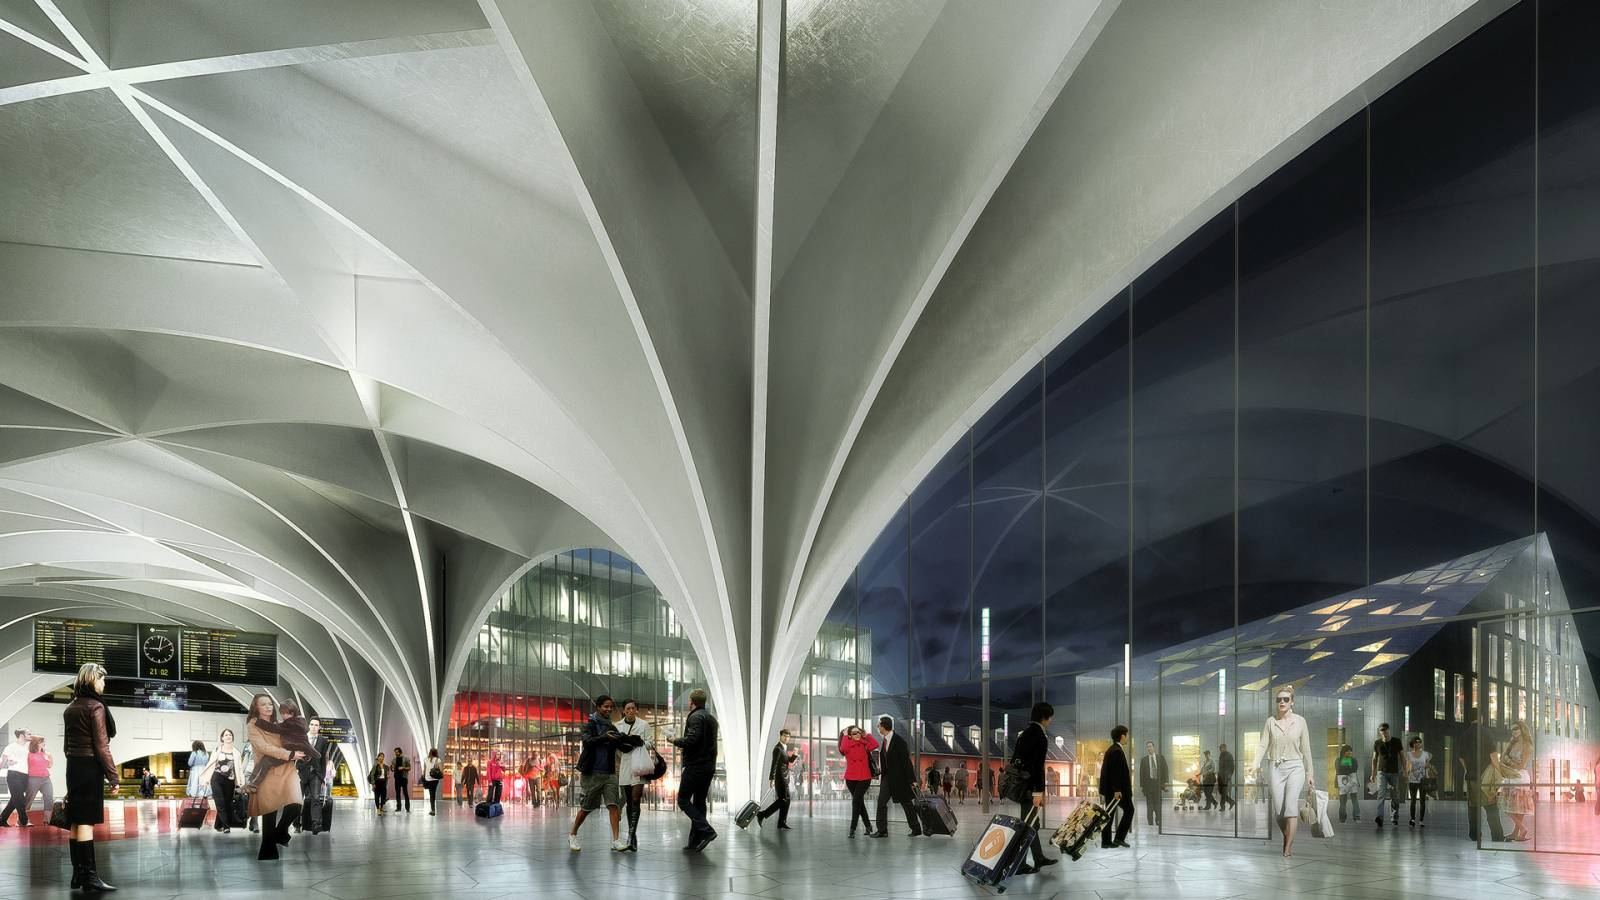 NEW UPPER PLAZA - OSLO CENTRAL STATION - SPOL Architects